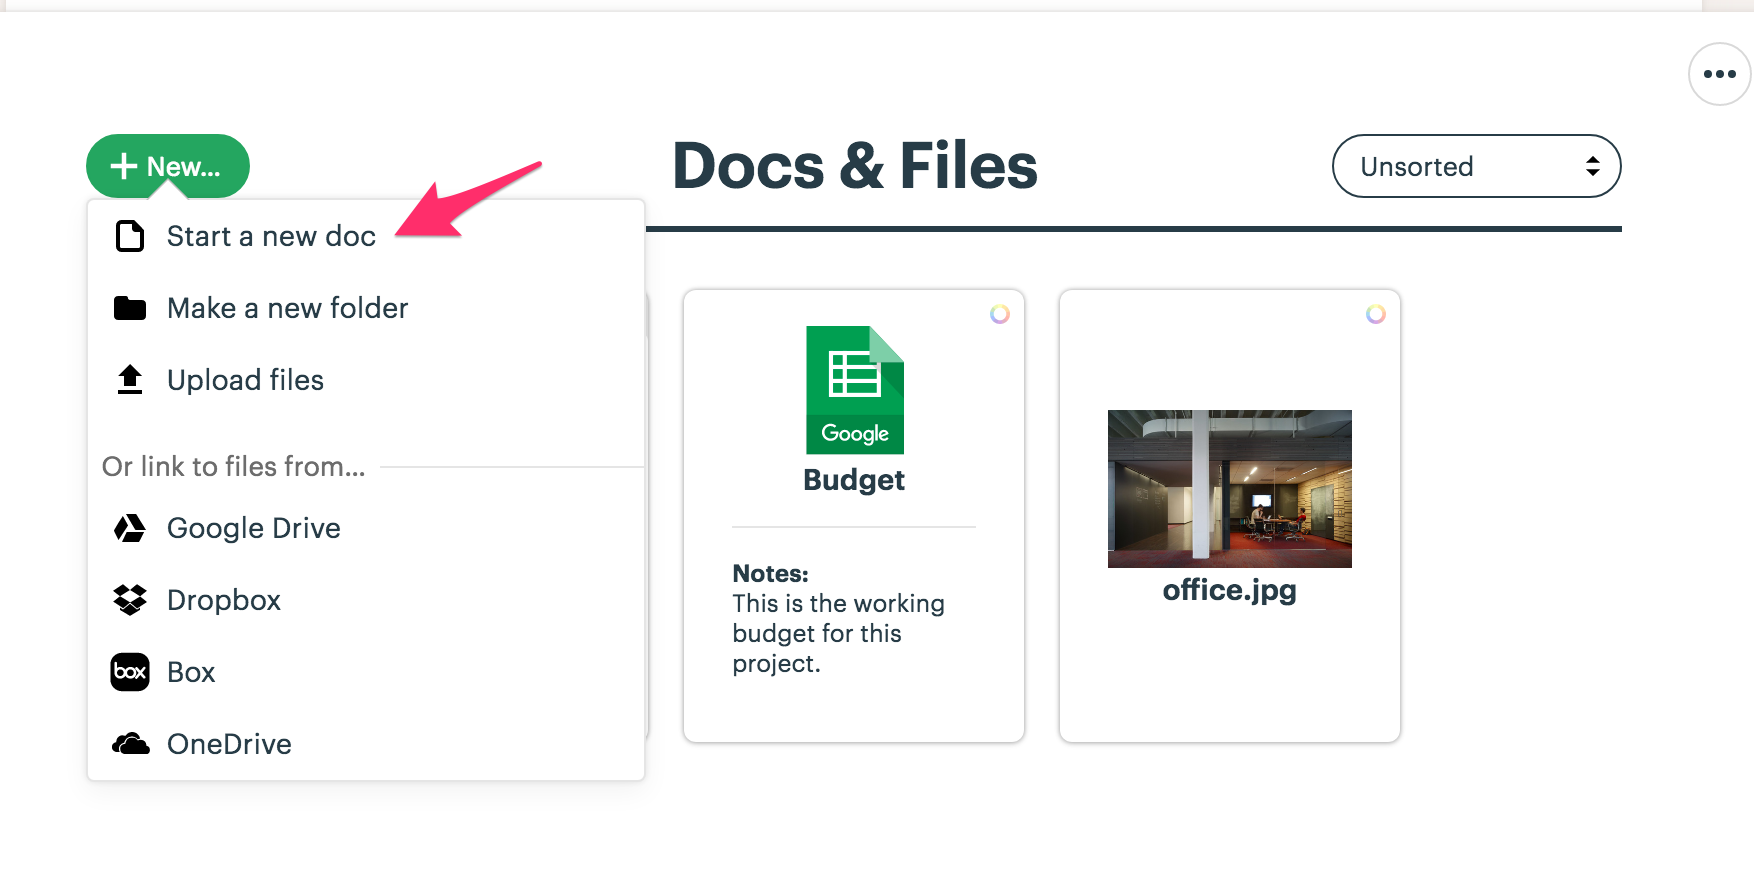 Docs & Files - Basecamp 3 Help